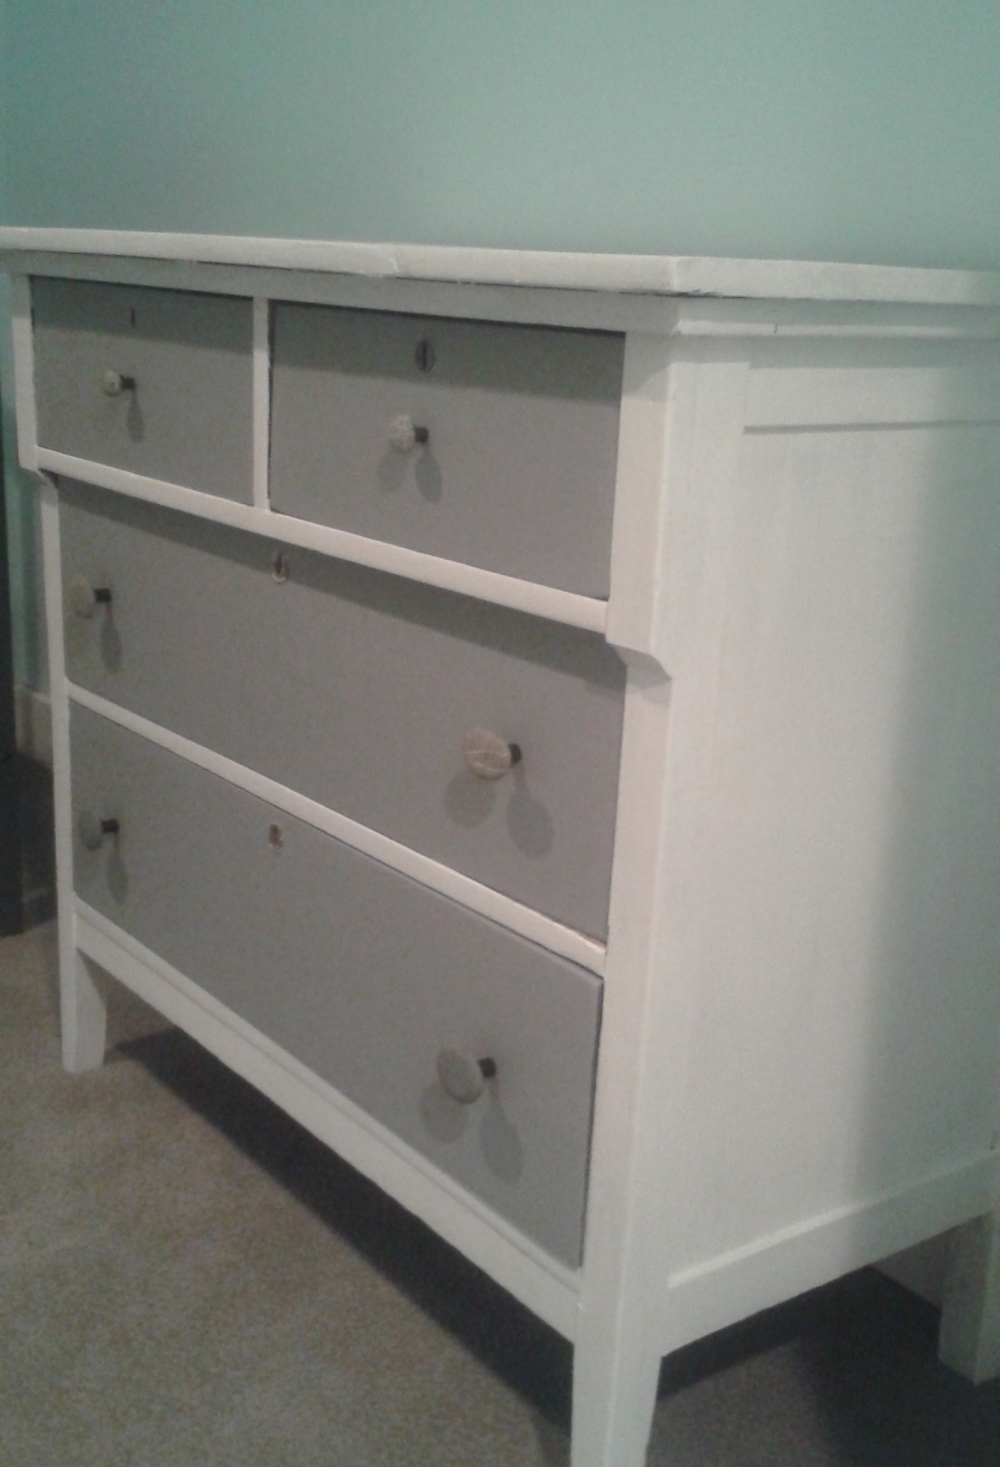 This broken and discarded dresser got a new life (and new leg to match the others). The custom knobs are made from northwest river rock.